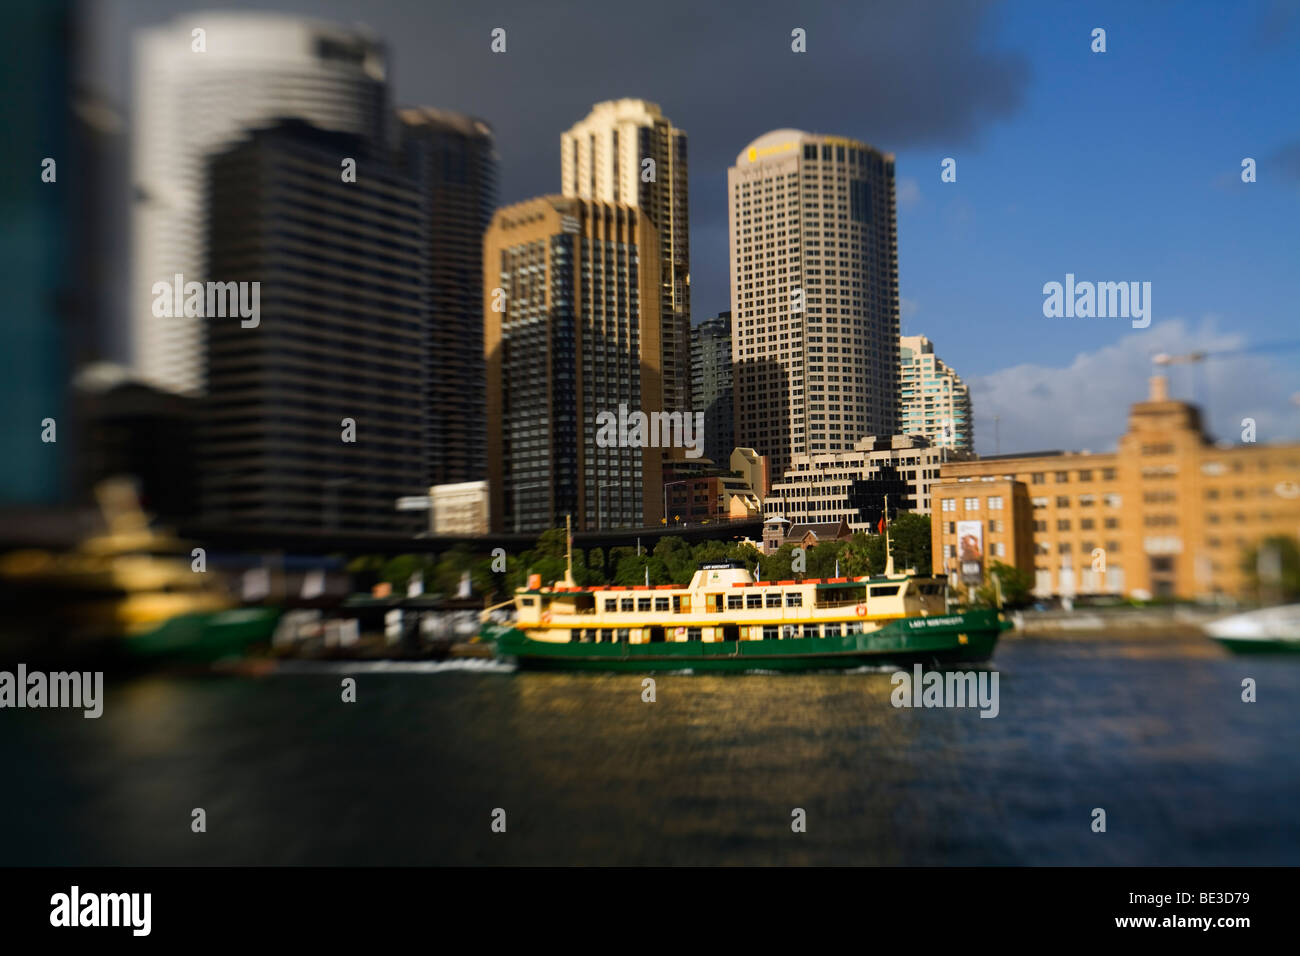 A Sydney ferry leaves Circular Quay. Sydney, New South Wales, AUSTRALIA - Stock Image